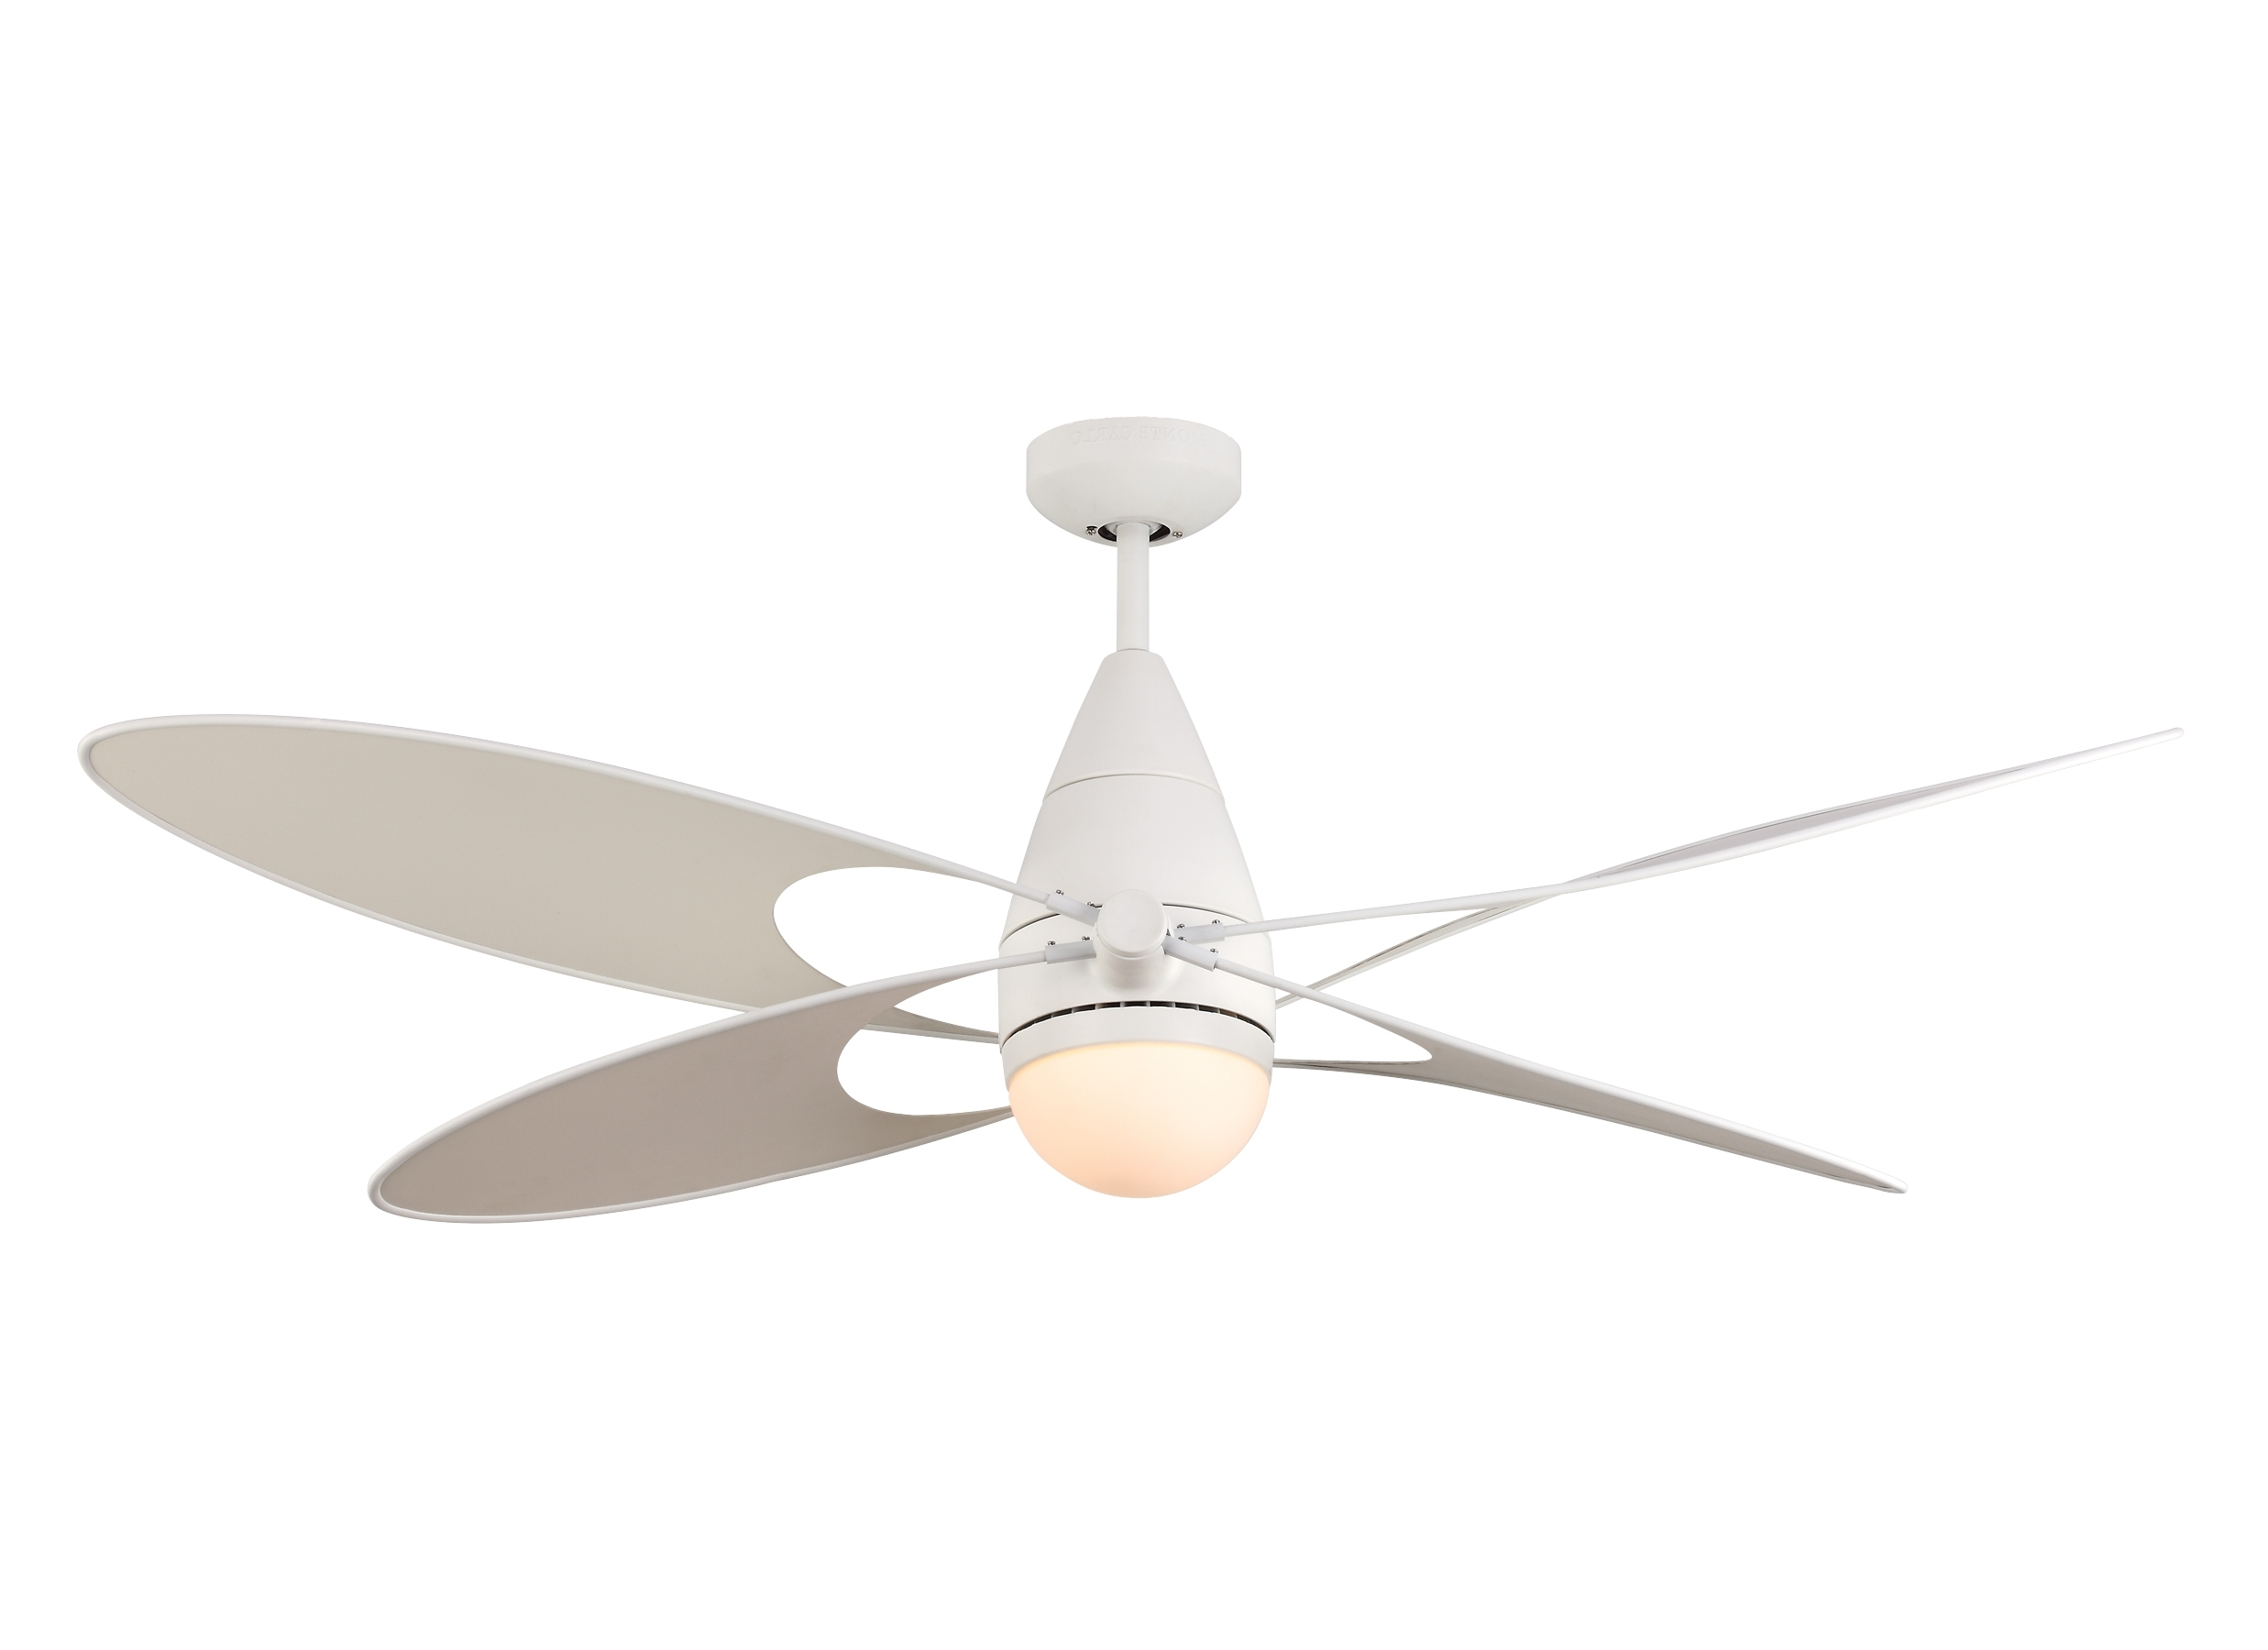 Lamps: Exciting Menards Ceiling Fans For Best Ceiling Fan Inside 2018 Outdoor Ceiling Fans At Menards (View 20 of 20)